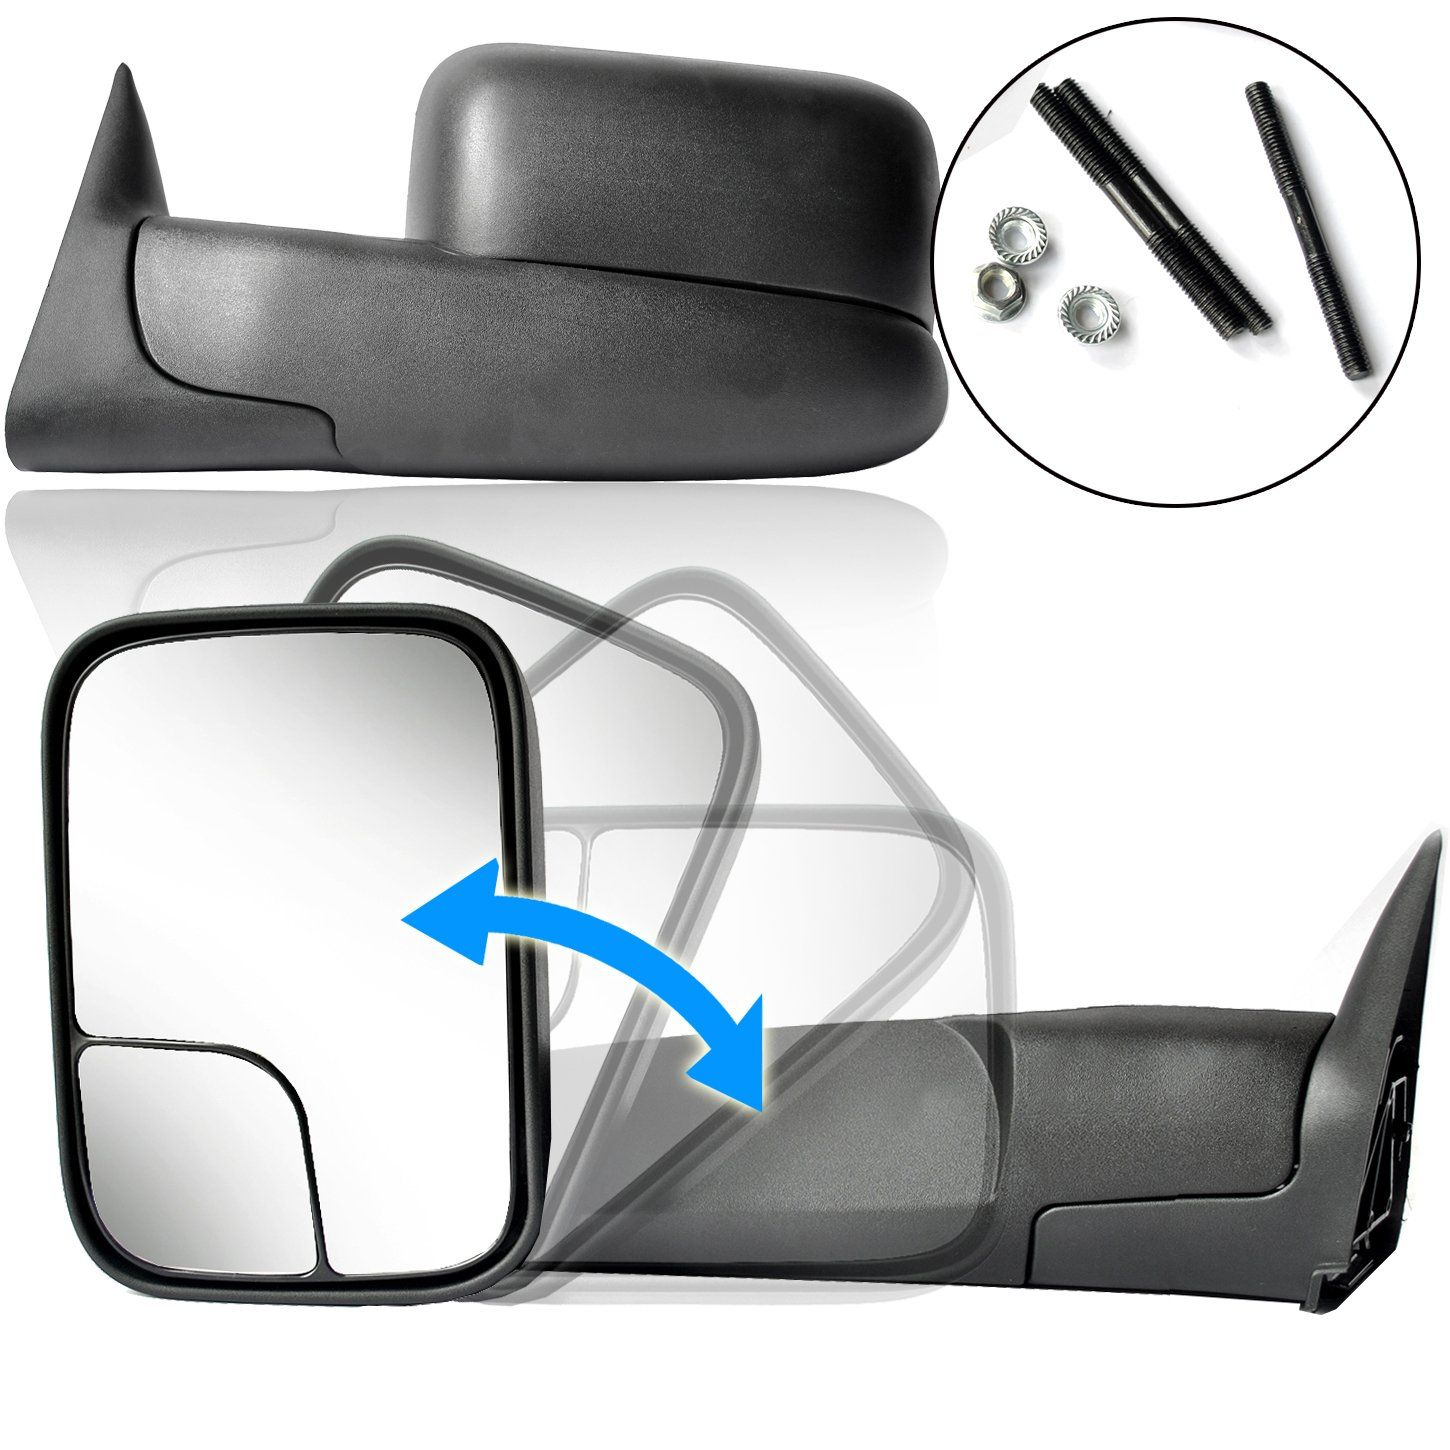 ECCPP Towing Mirror Replacement fit Dodge 9401 Ram 1500